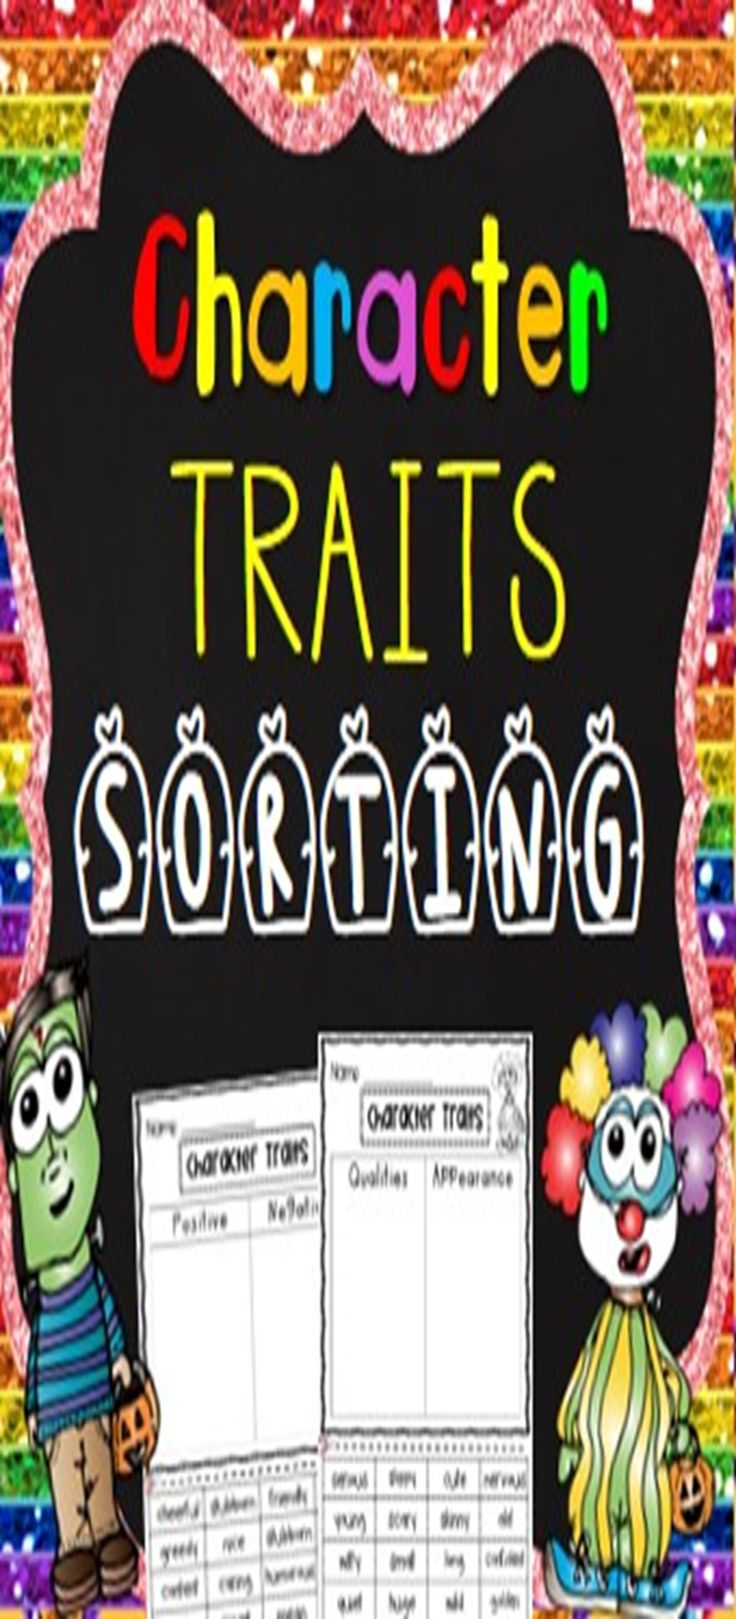 Hot selling print and go kit - Help your students cement their understanding of character traits. In this fun pack, students will sort character traits into qualities and appearance and positive and negative qualities. Students will then write character traits for their favorite movie star, superhero, character, best friend and teacher.